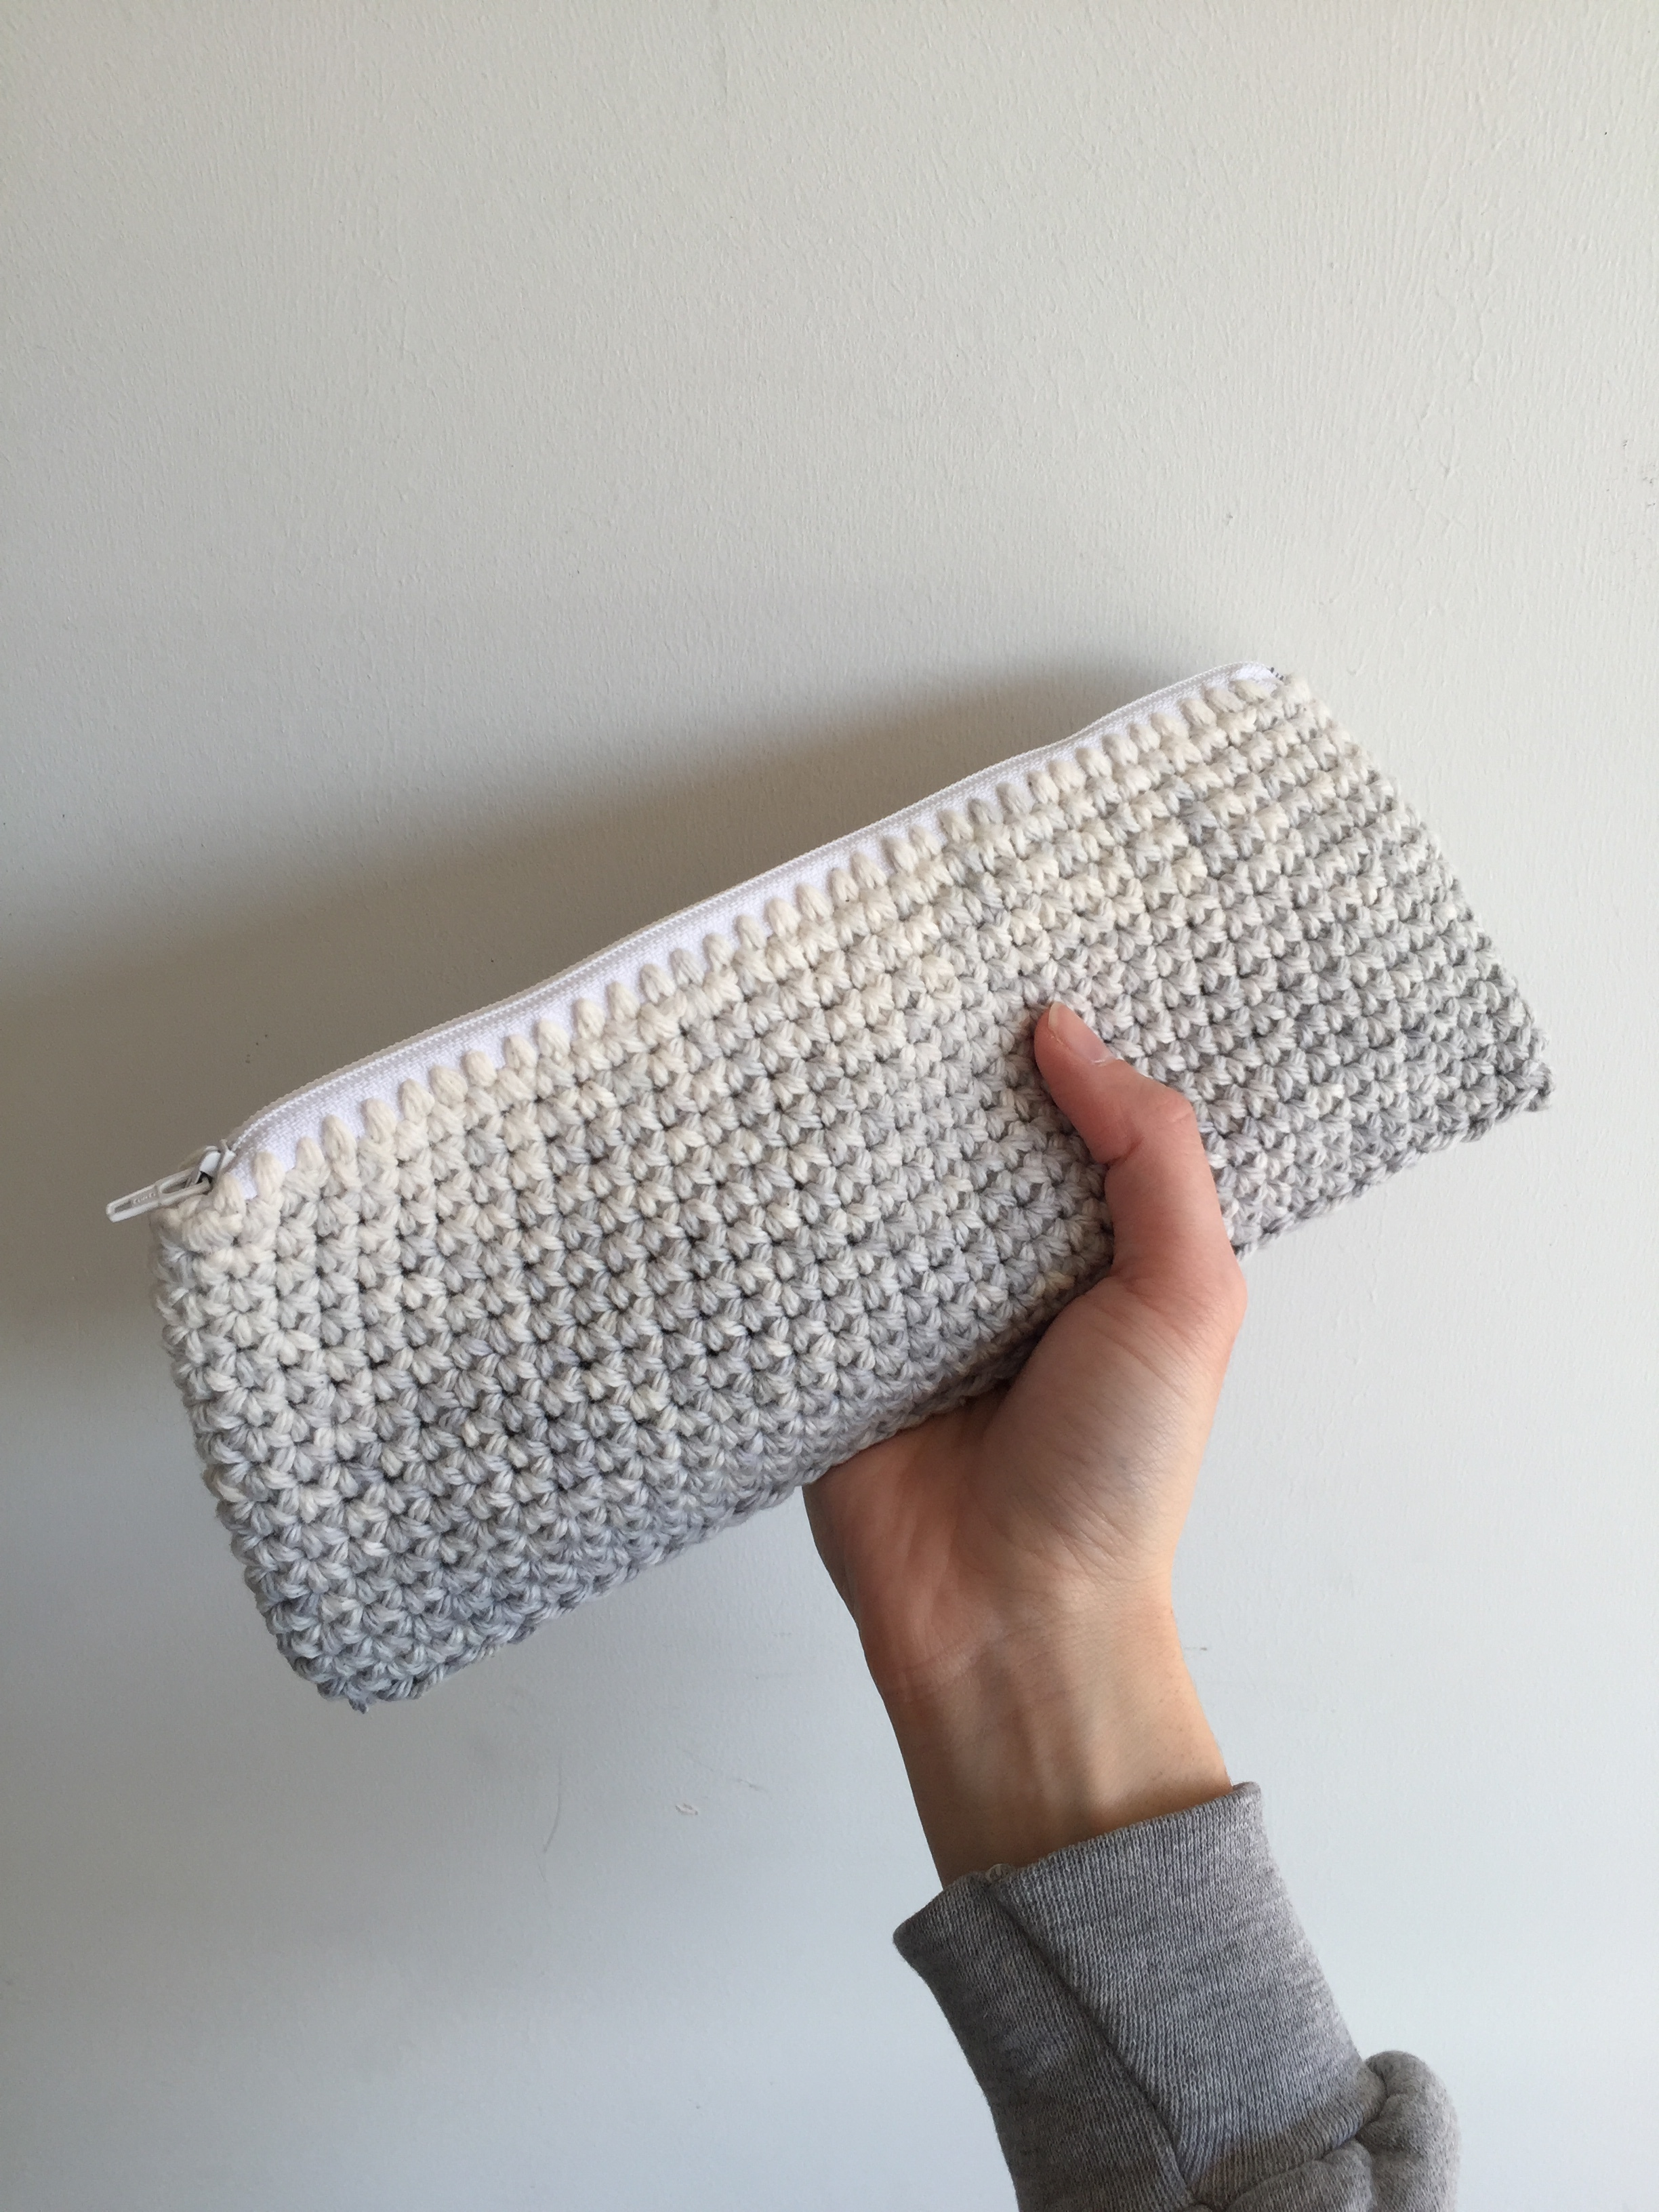 How to crochet a zippered pouch